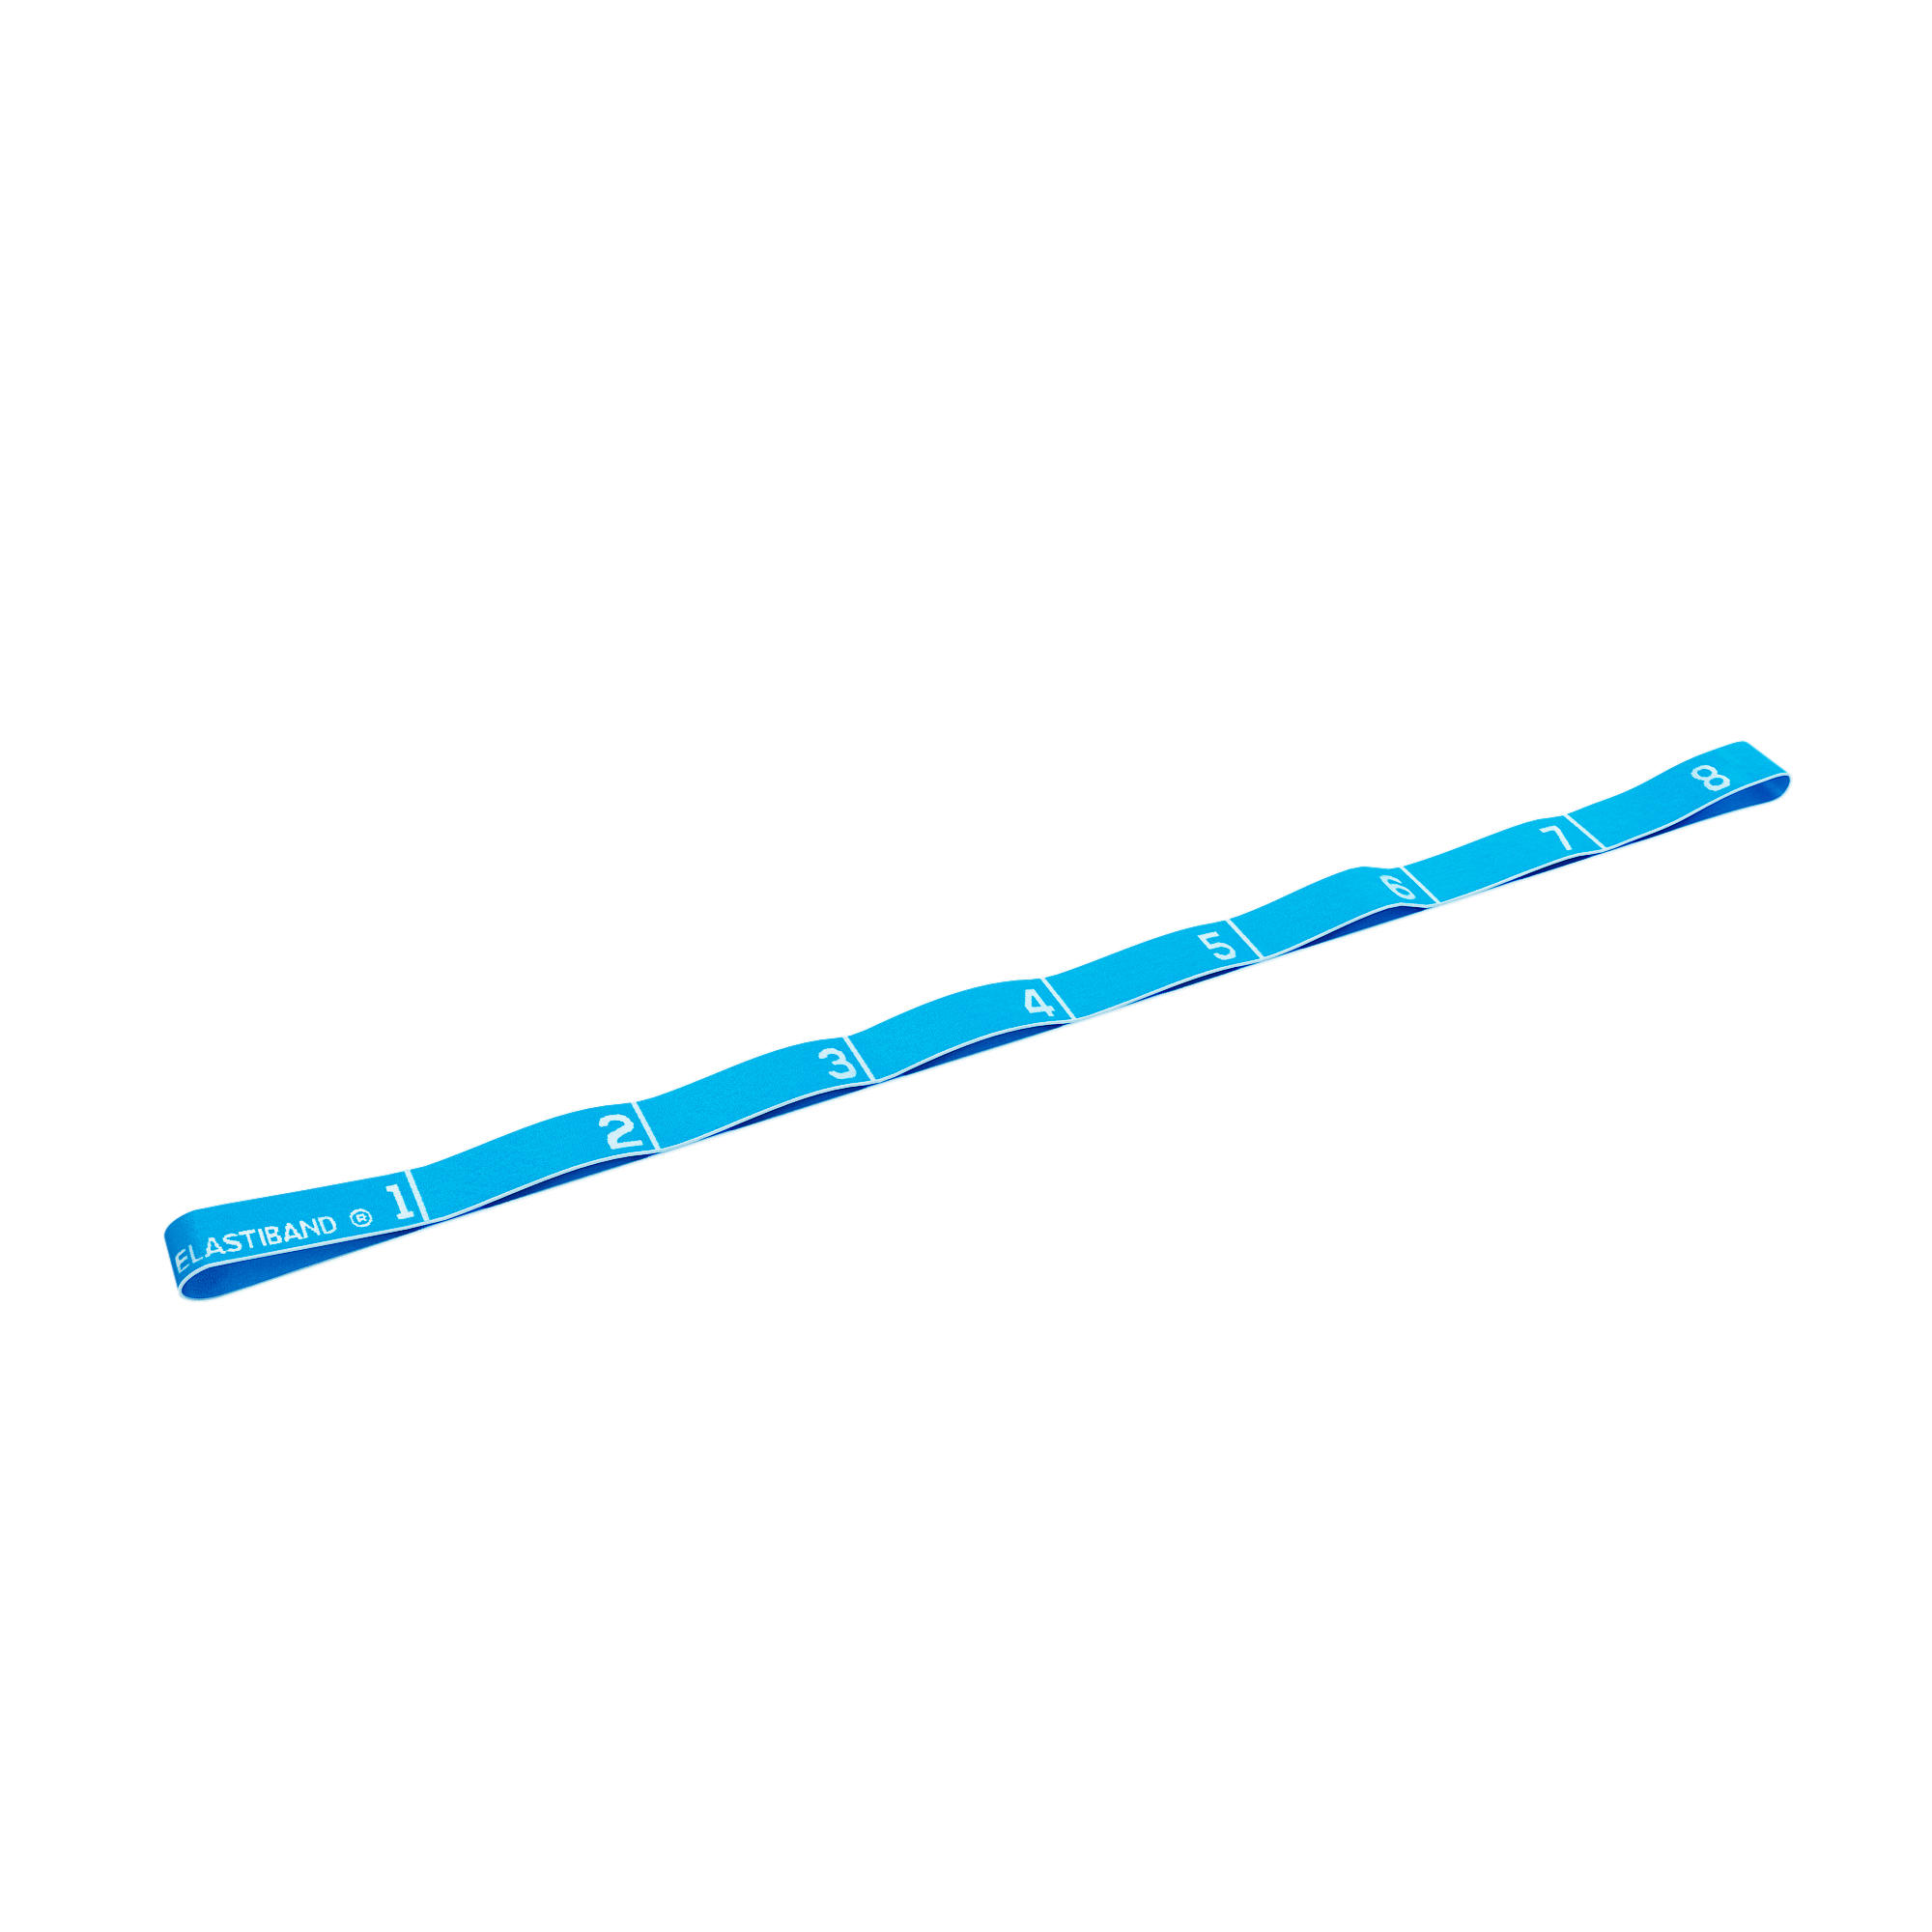 500 Pilates Stretching Fabric Elastic Band with Handles Medium Resistance